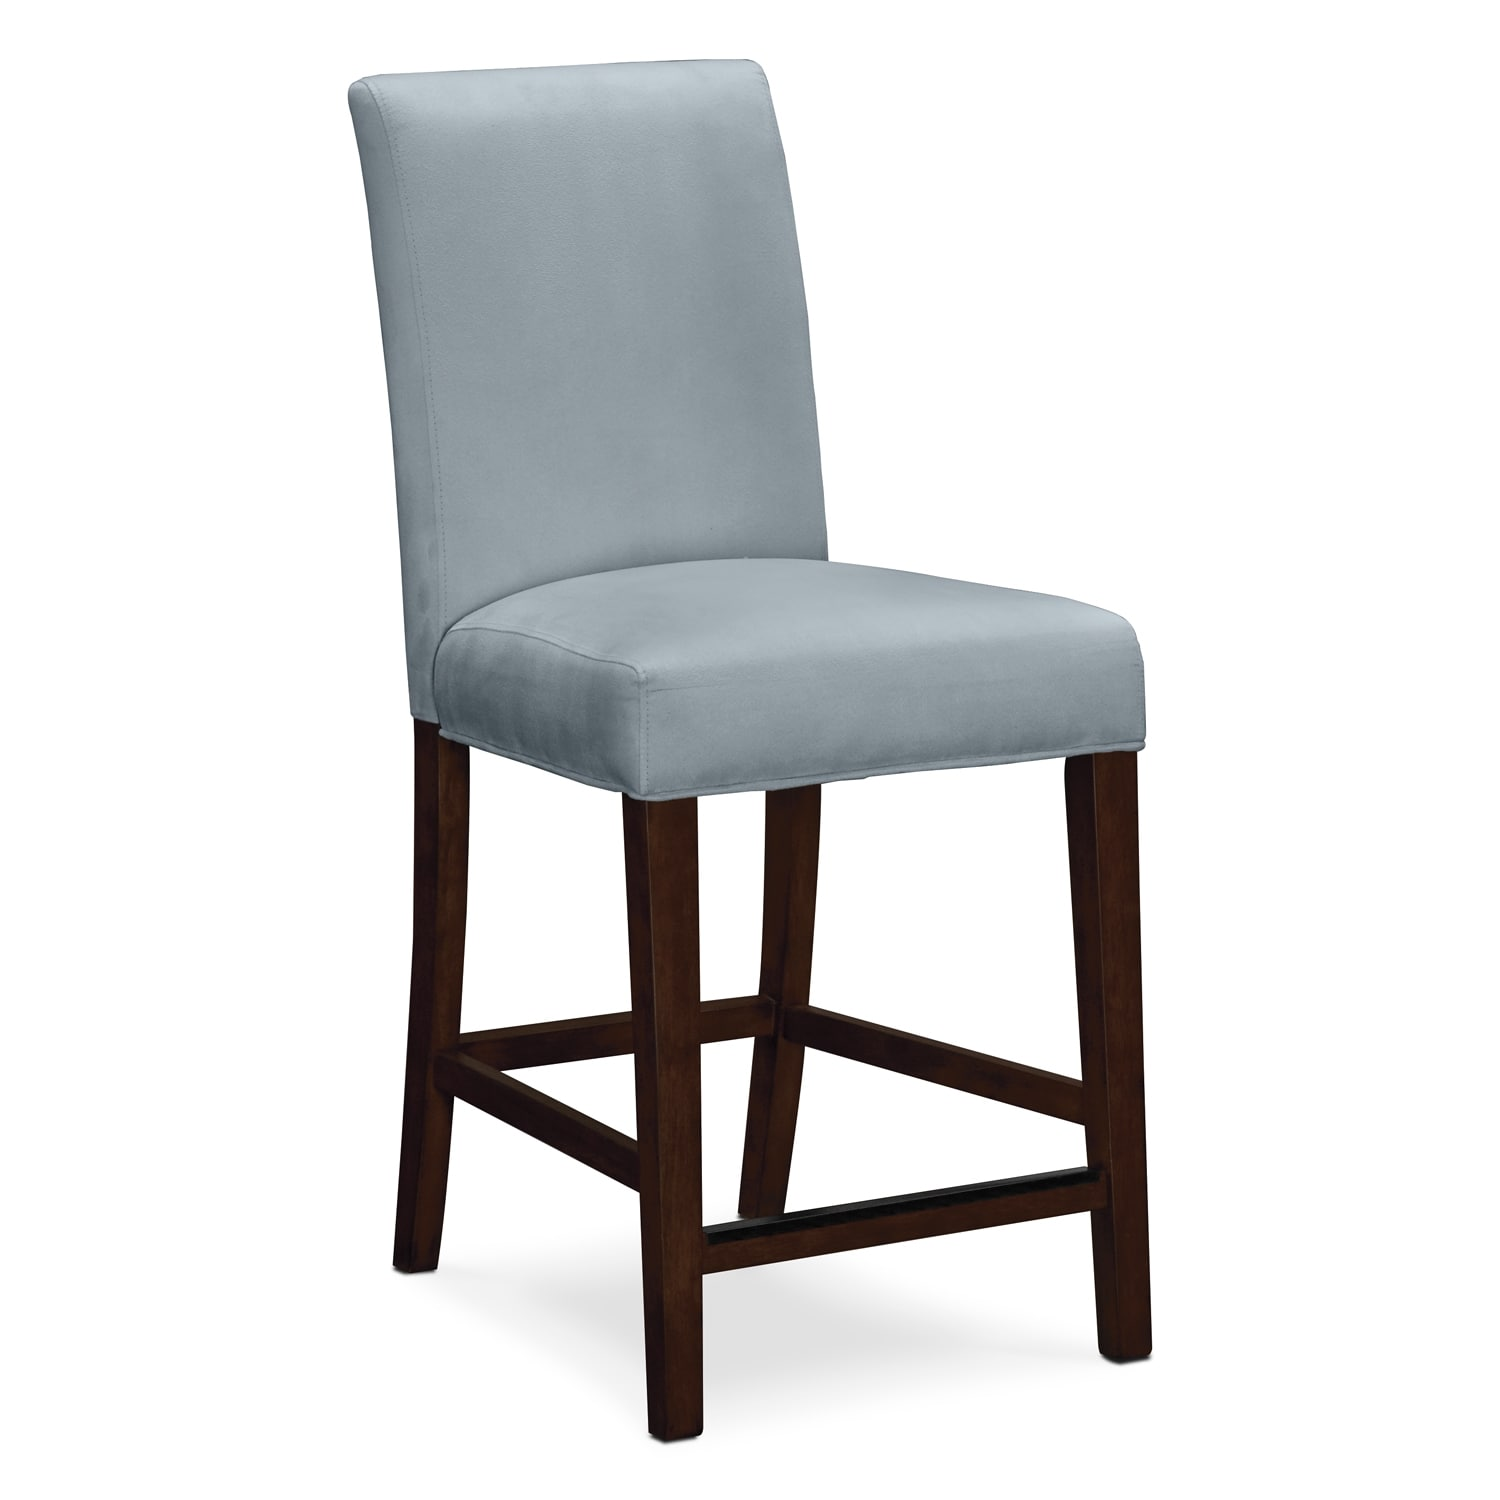 Alcove counter height stool aqua american signature Counter seating